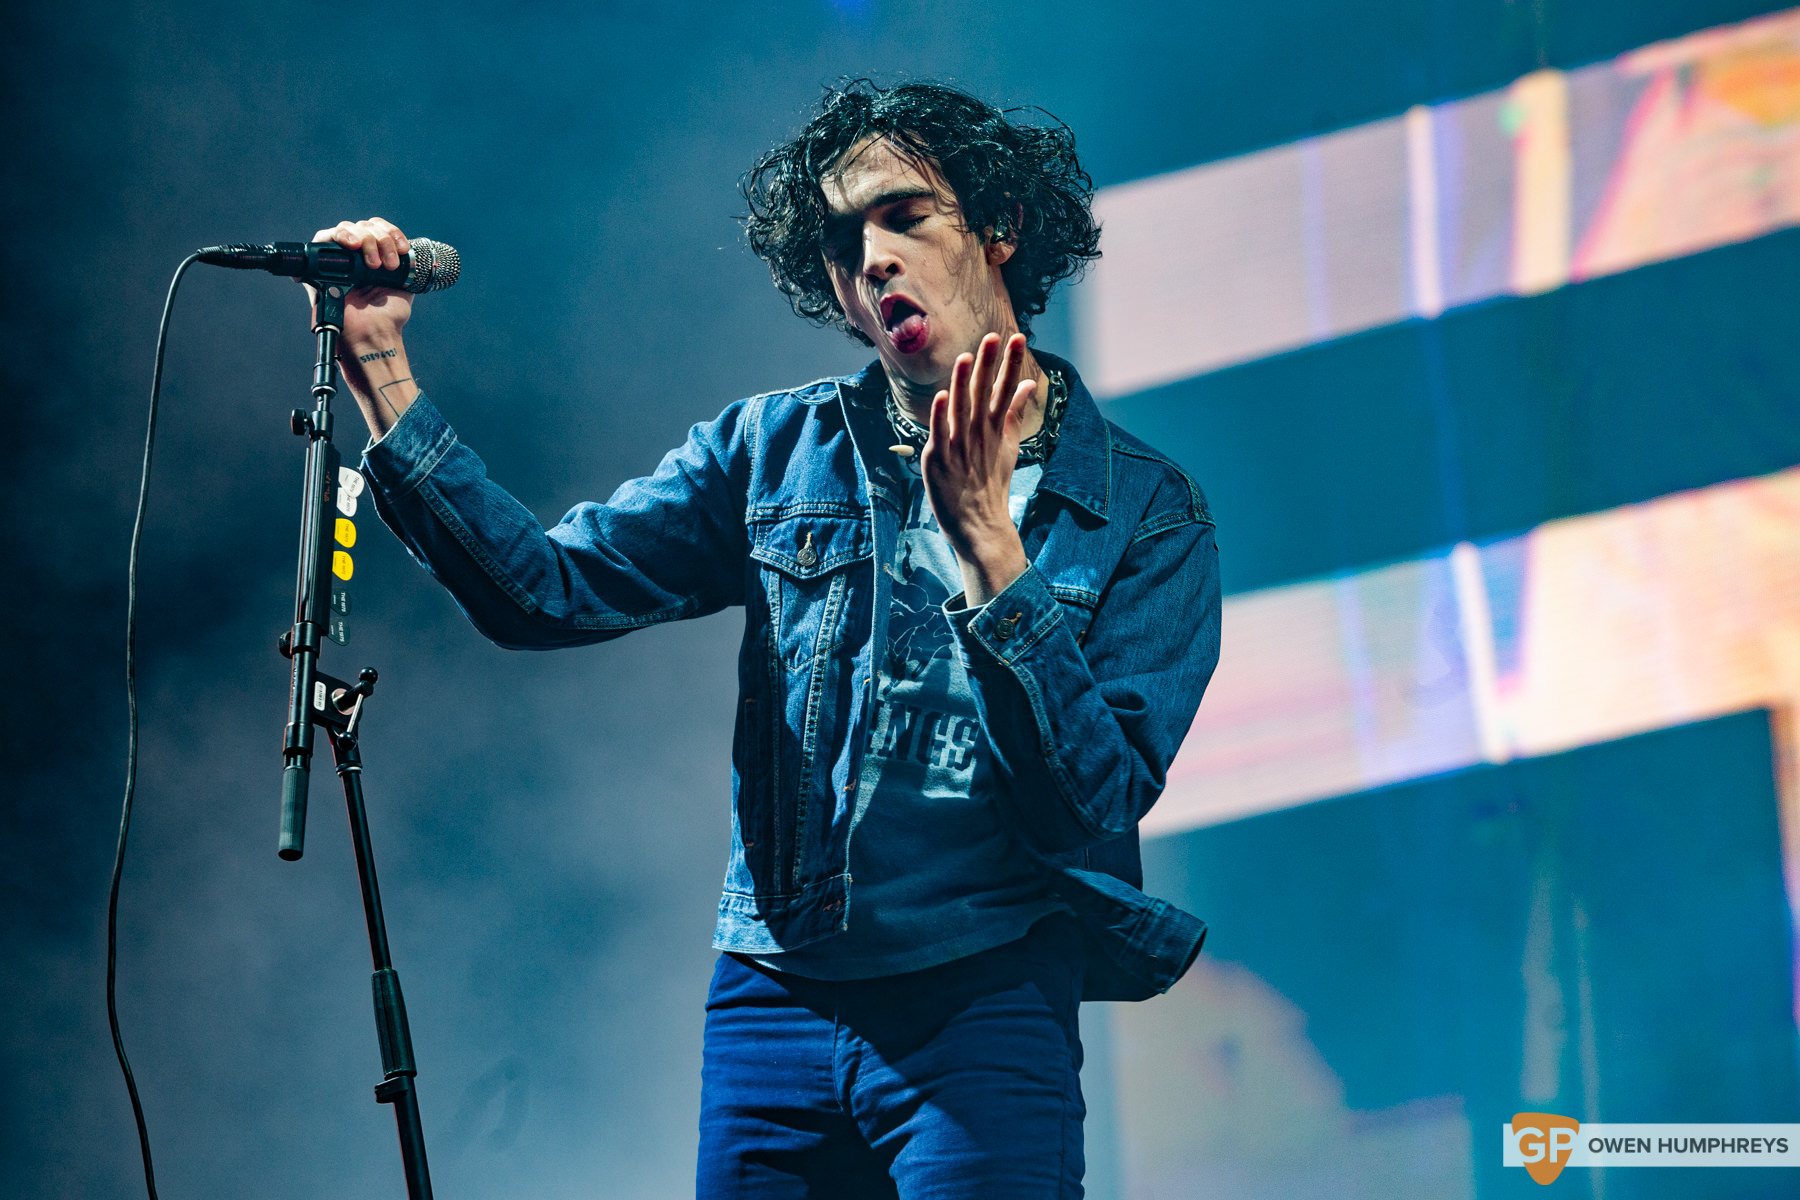 The 1975 at Electric Picnic 2019. Photo by Owen Humphreys. www.owen.ie